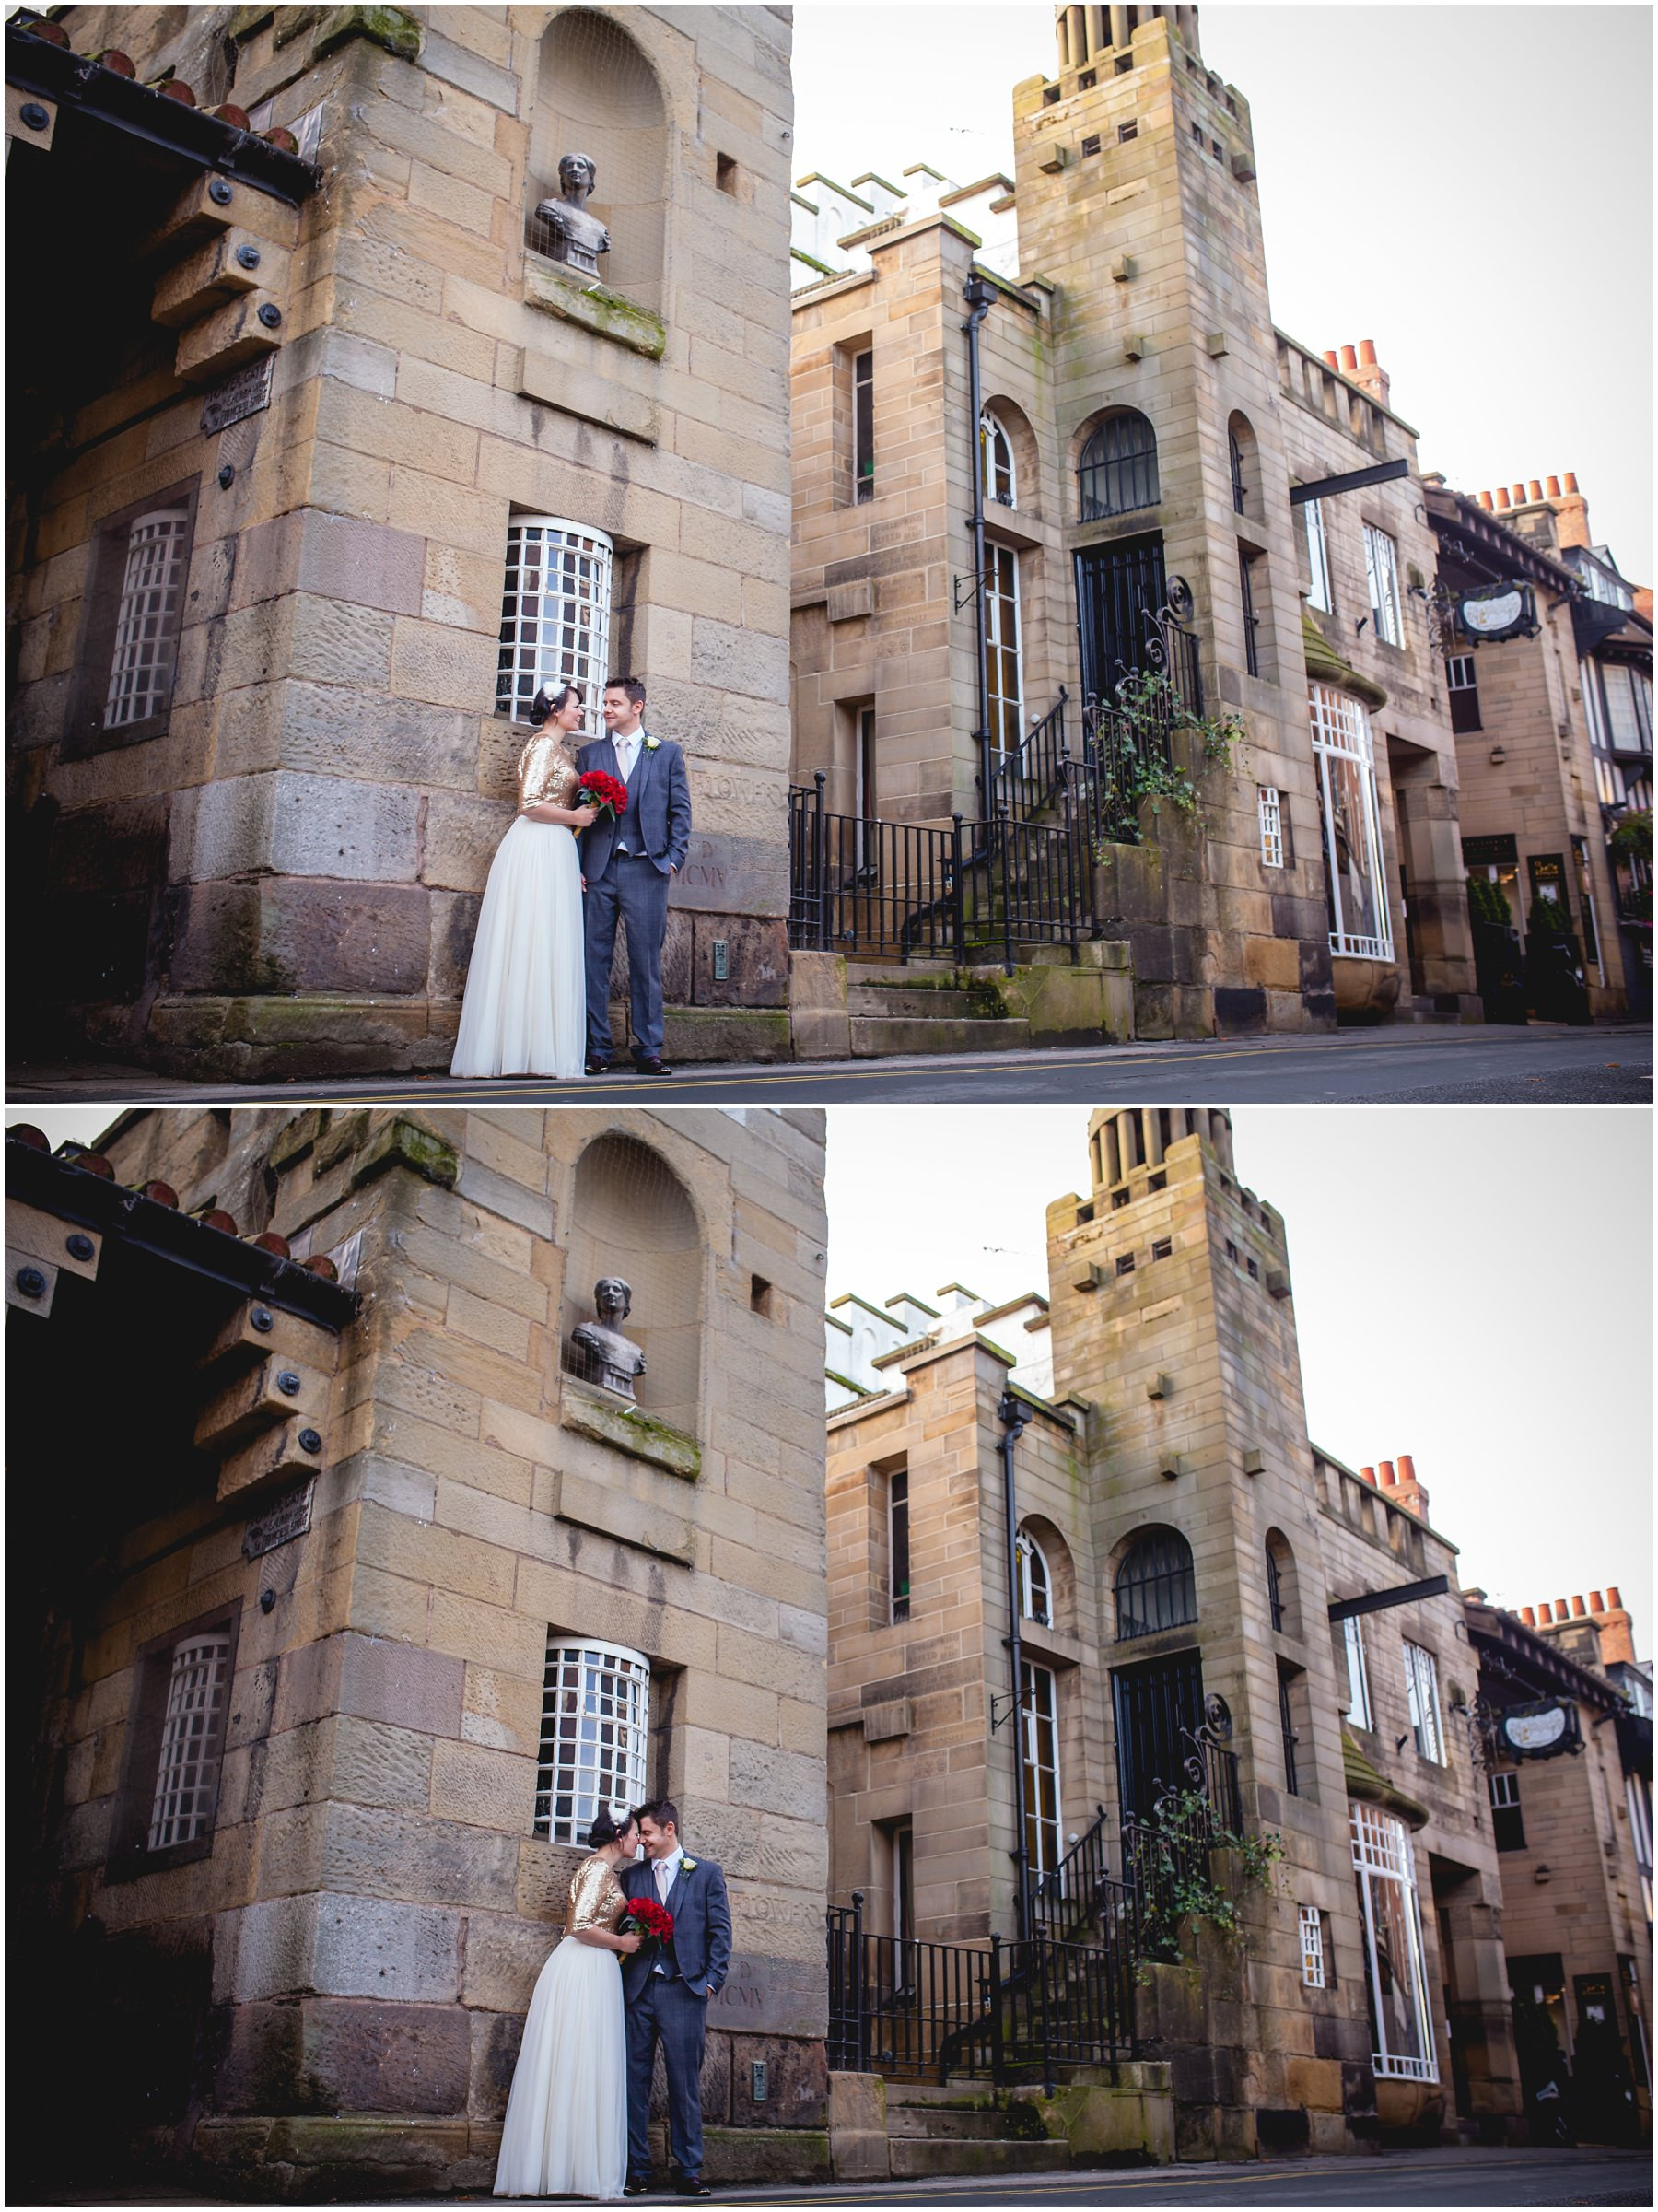 wedding photographs with a couple pictured outside the Belle Epoque